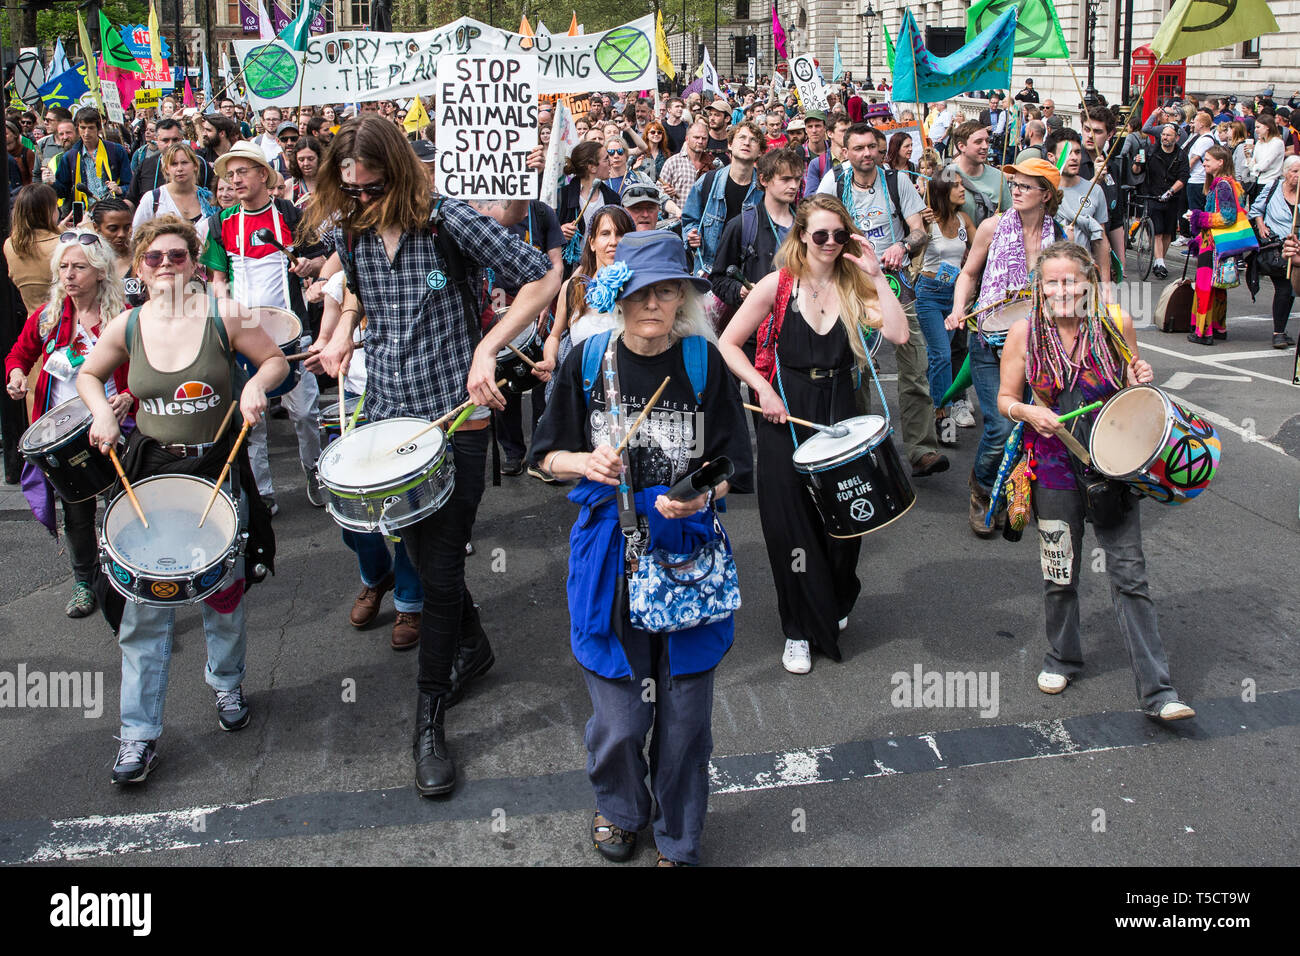 London, UK. 23rd April 2019. The XR Samba Band marches in front of fellow climate change activists from Extinction Rebellion in Parliament Square prior to an assembly and the preparation of letters requesting meetings with Members of Parliament. Credit: Mark Kerrison/Alamy Live News - Stock Image